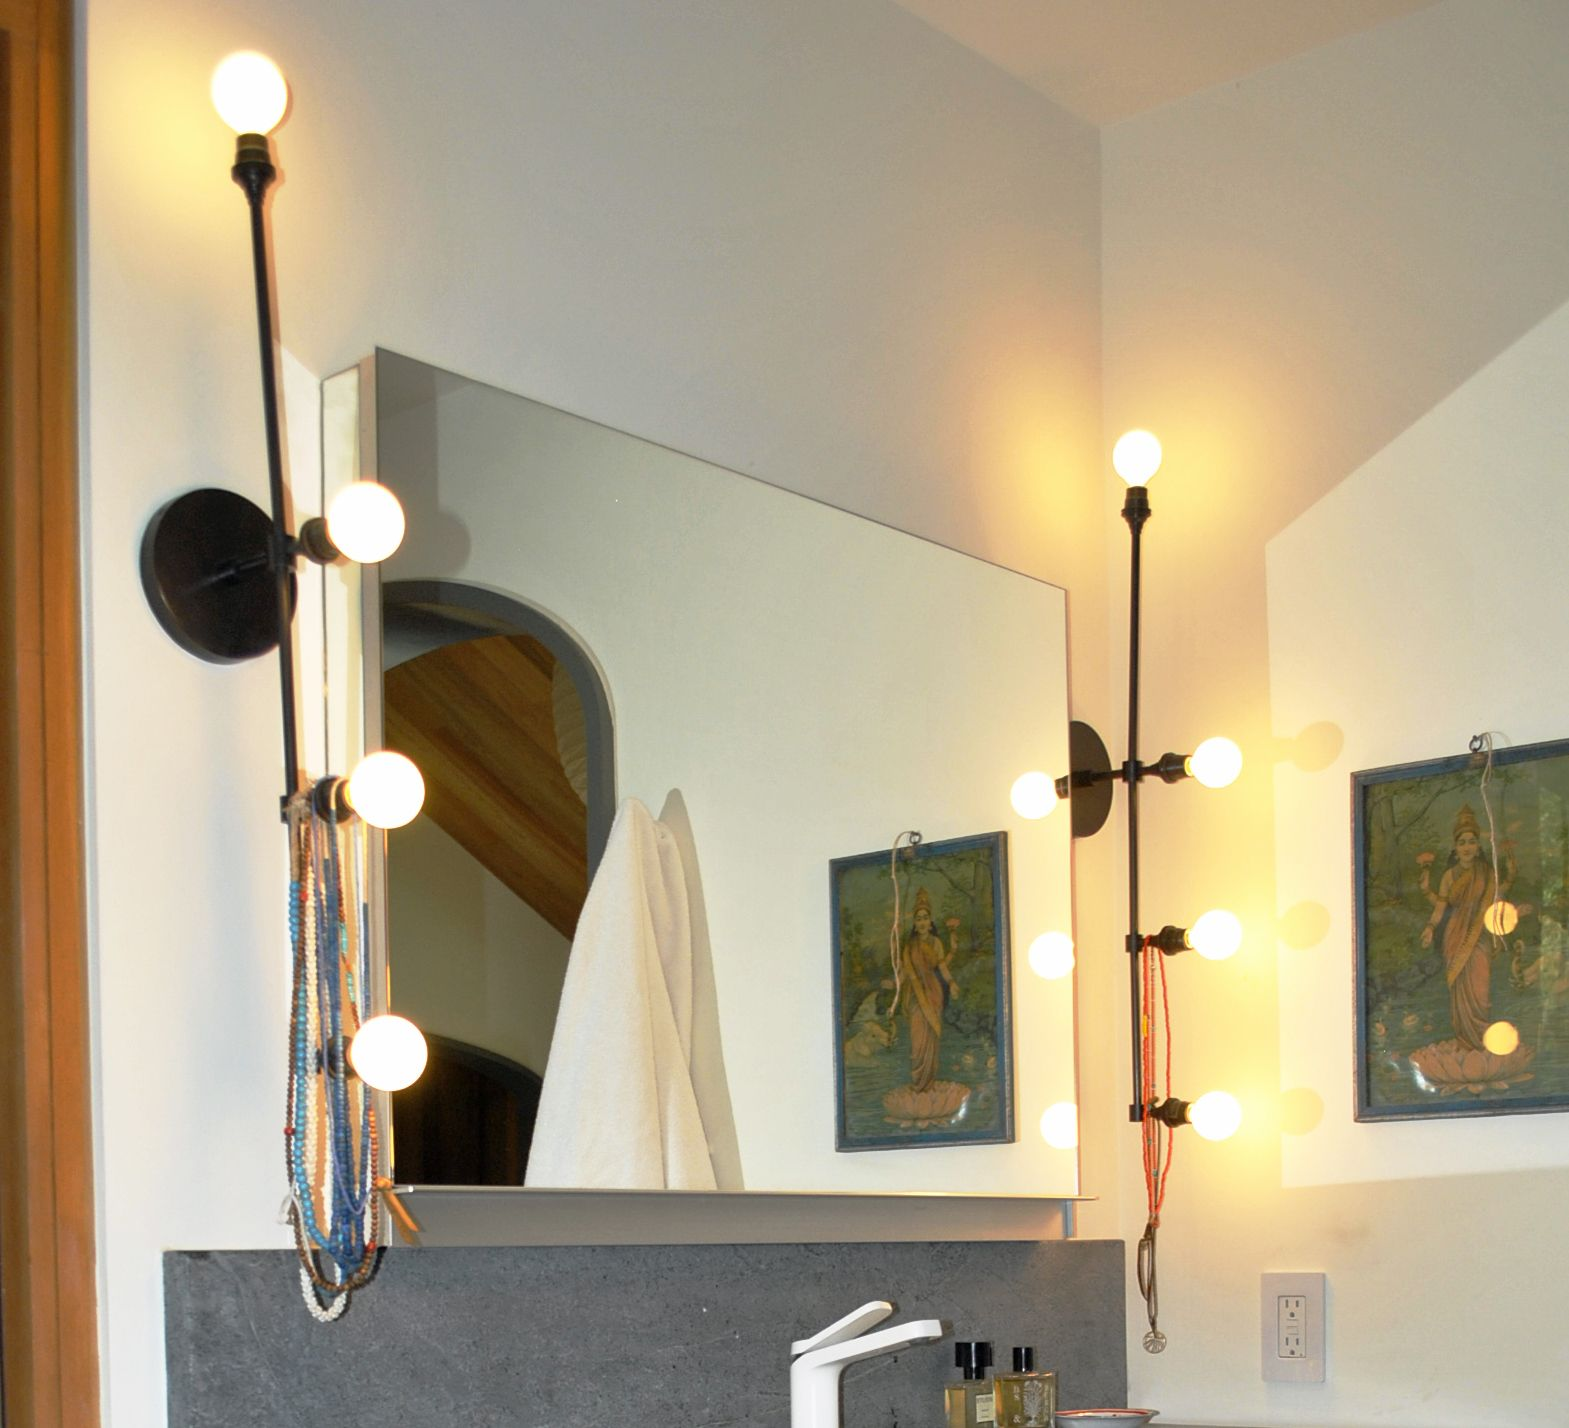 bathroom brilliant lights mirror also with fixtures modern contemporary sconces from cabinets light lighting rich unique vanity wall monocle sconce